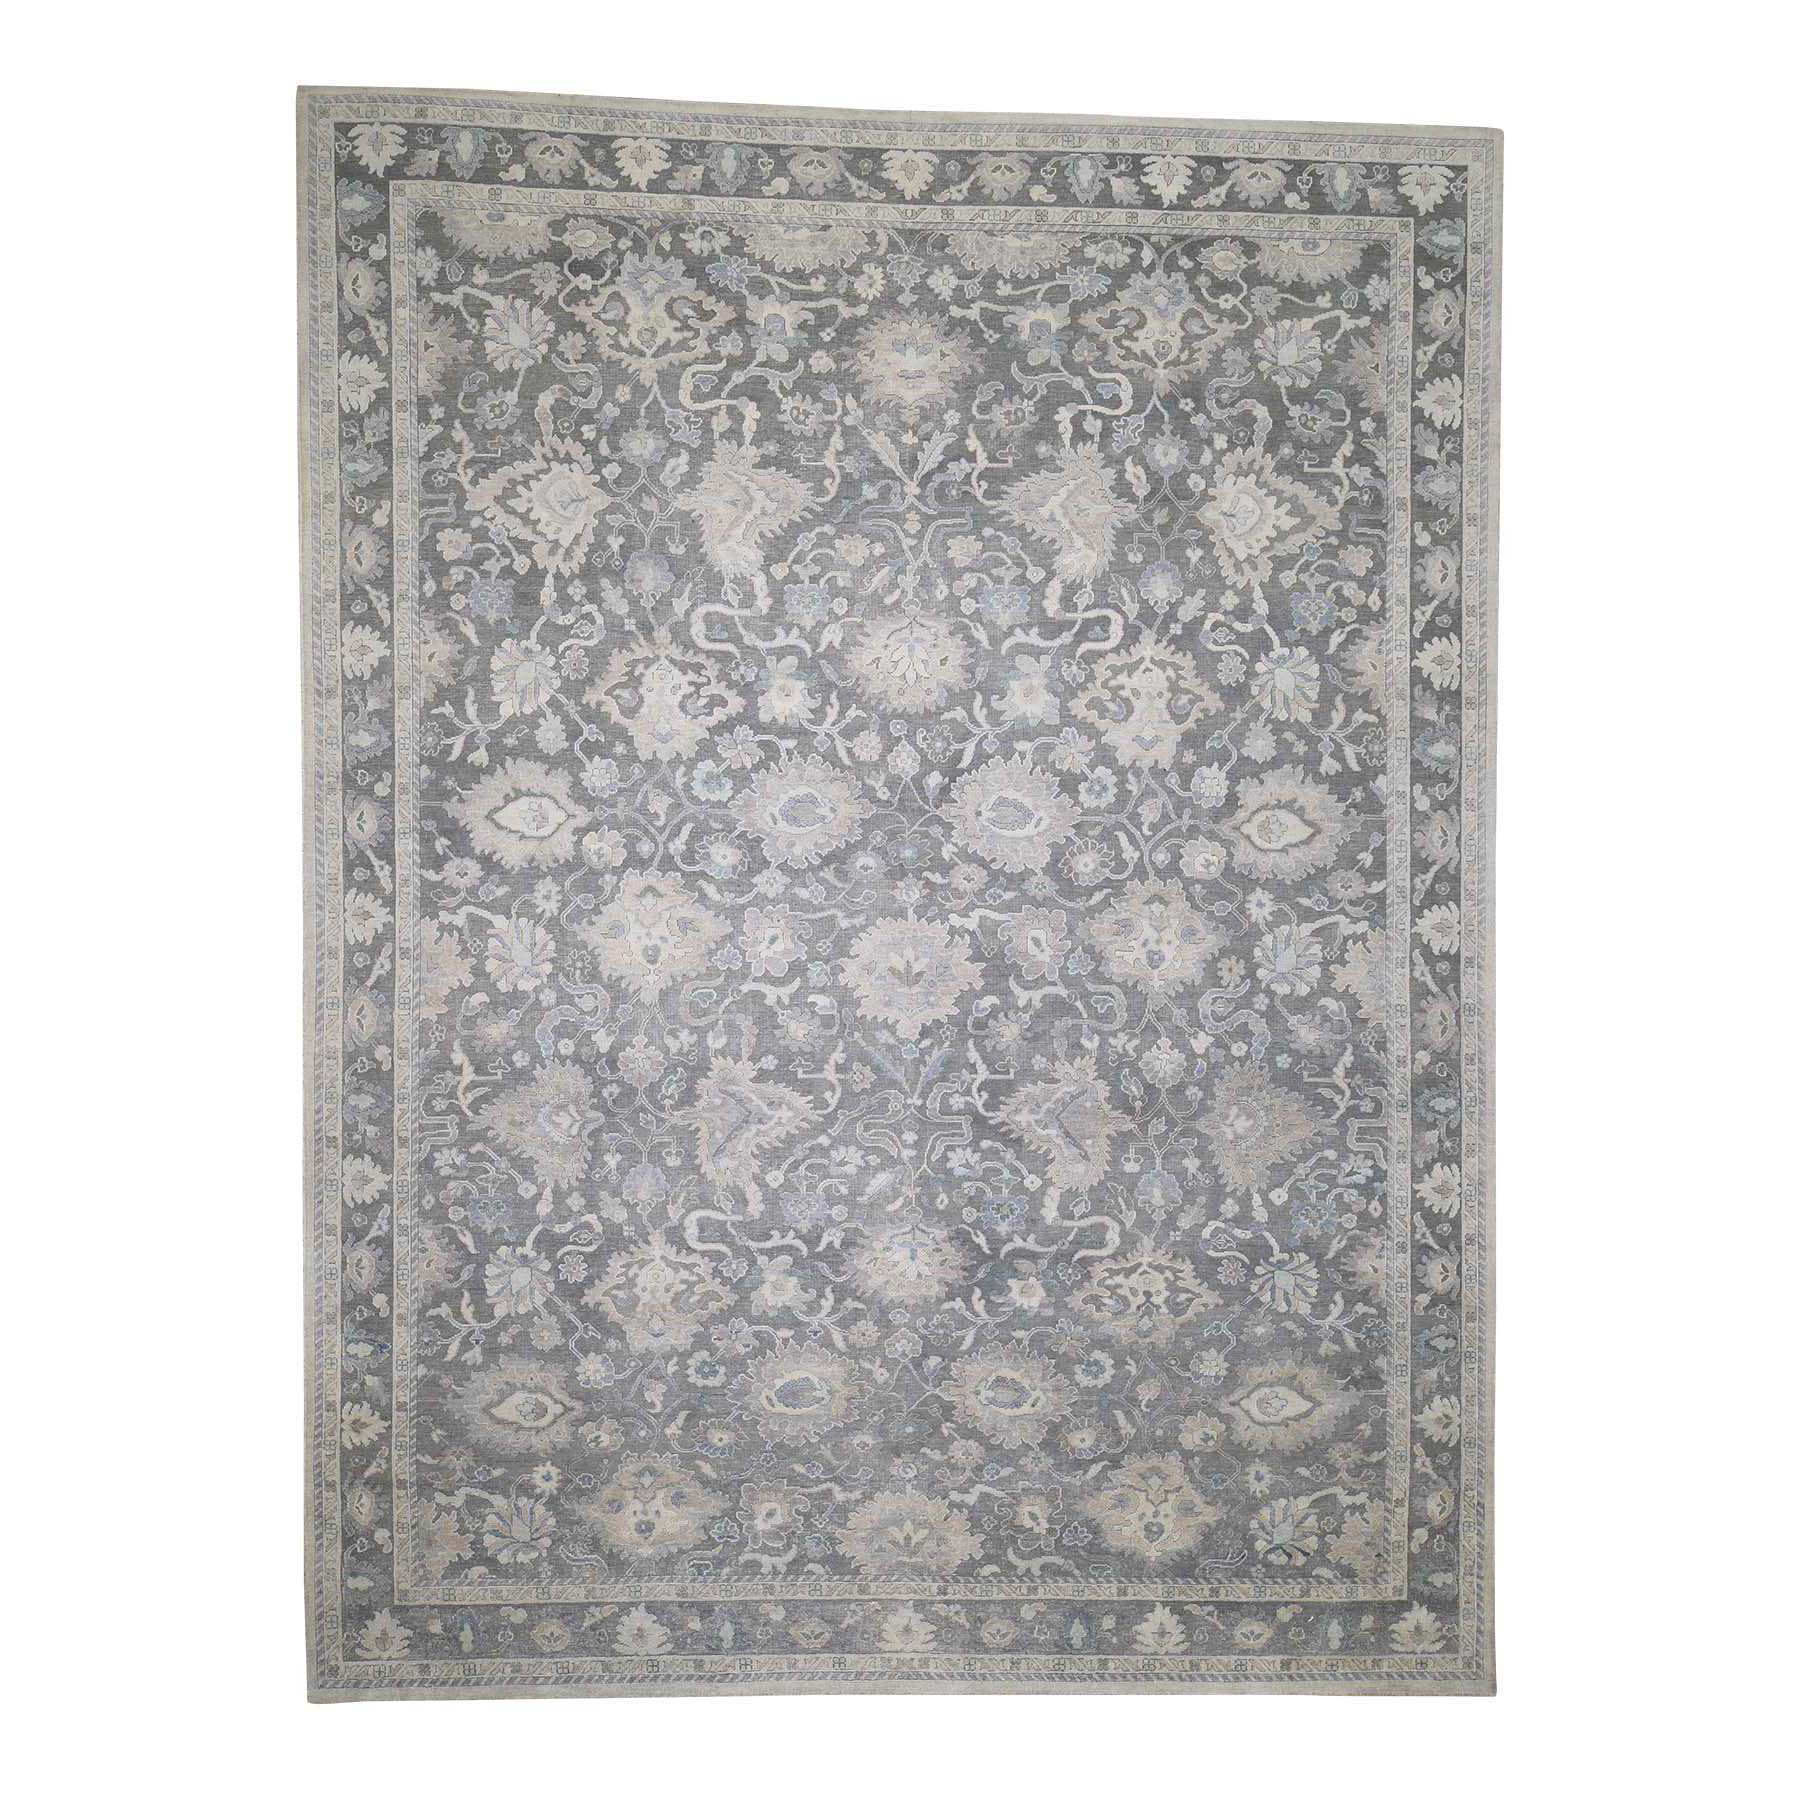 9'x12' Hand-Knotted Oushak Influence Pure Silk With Textured Wool Oriental Rug